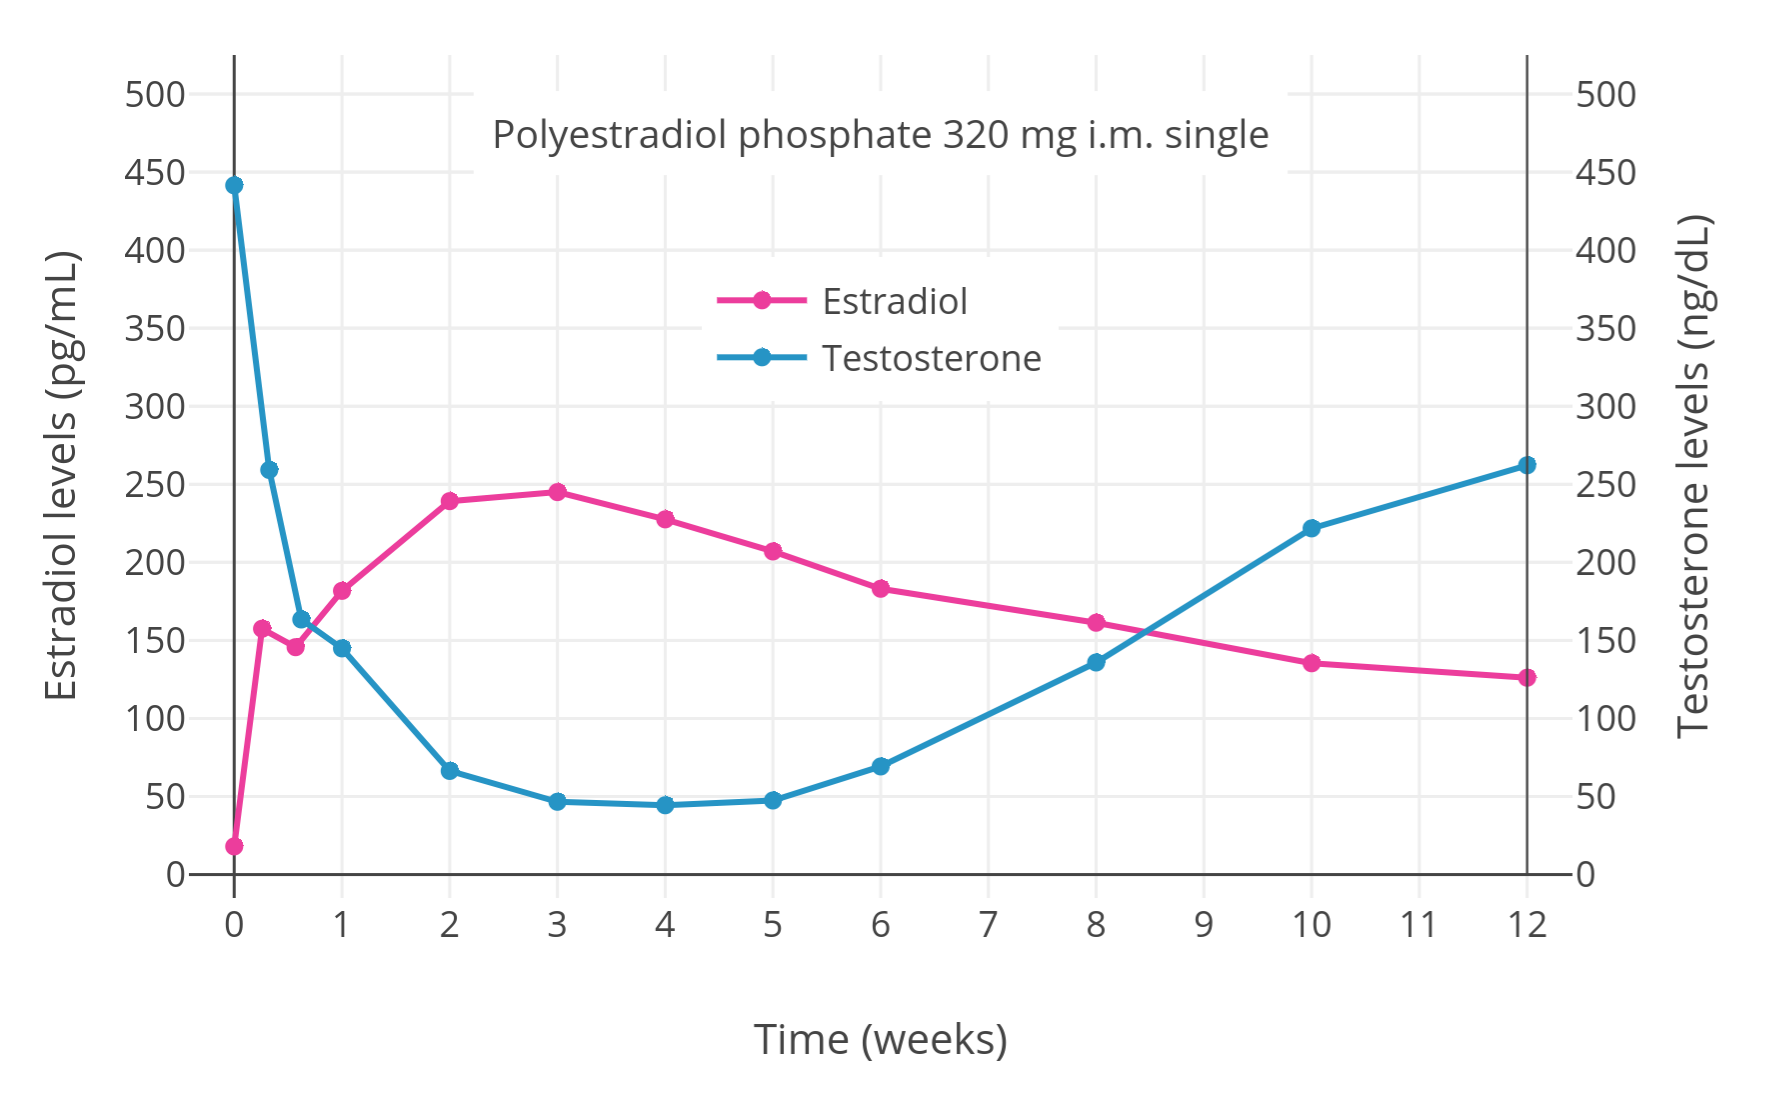 File:Estradiol and testosterone levels with a single intramuscular  injection of 320 mg polyestradiol phosphate